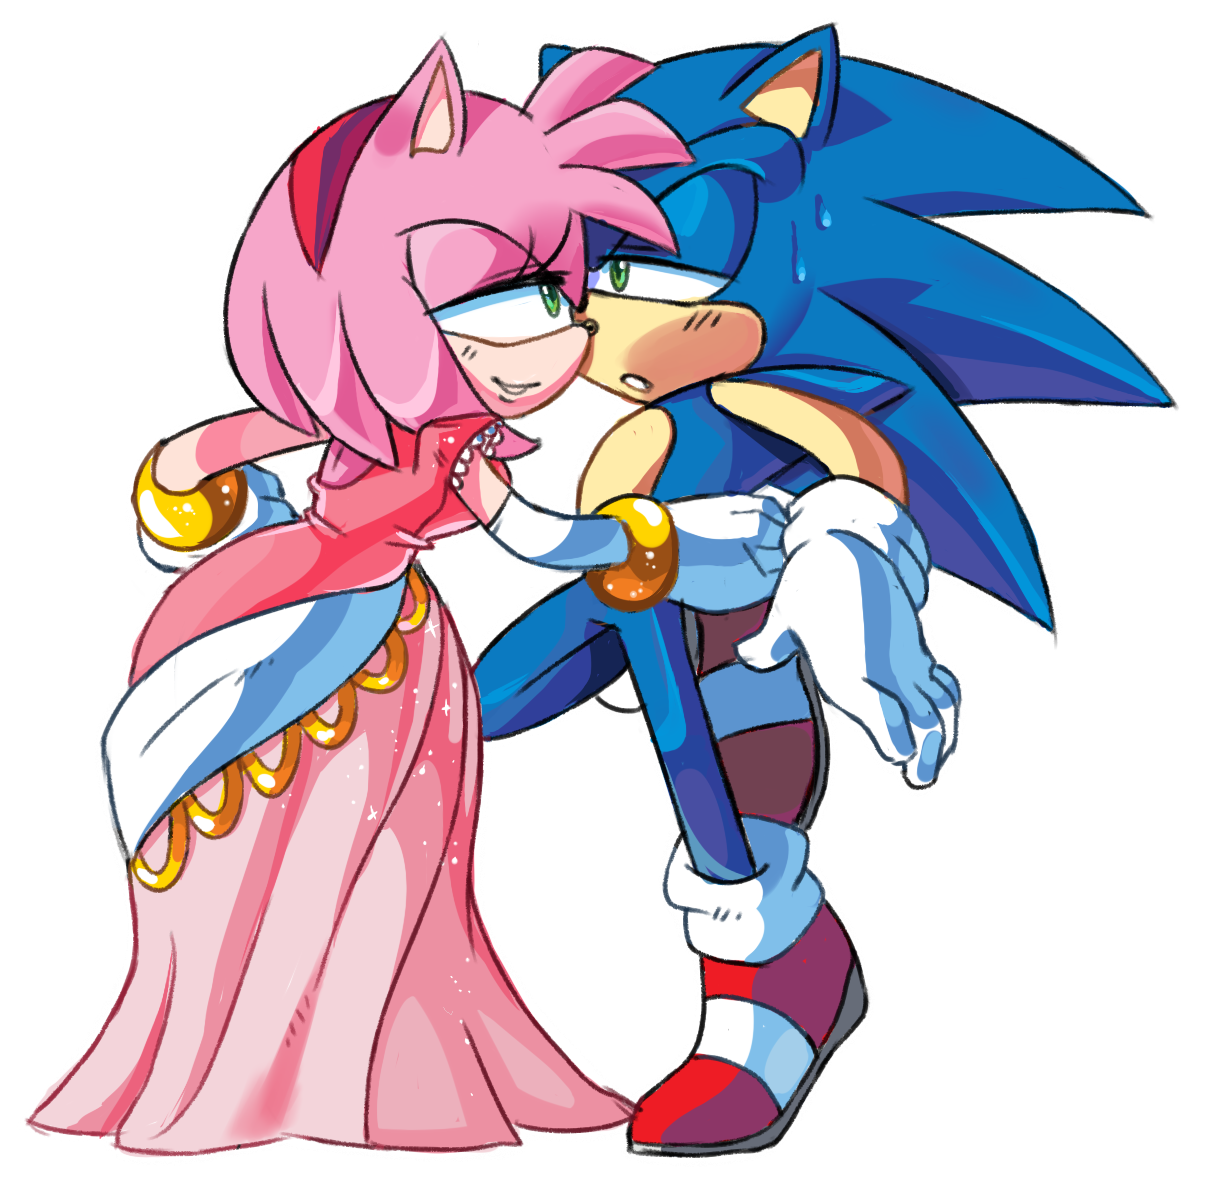 Recreation thing from the scene in sonic x sonic the - Amy rose sonic x ...